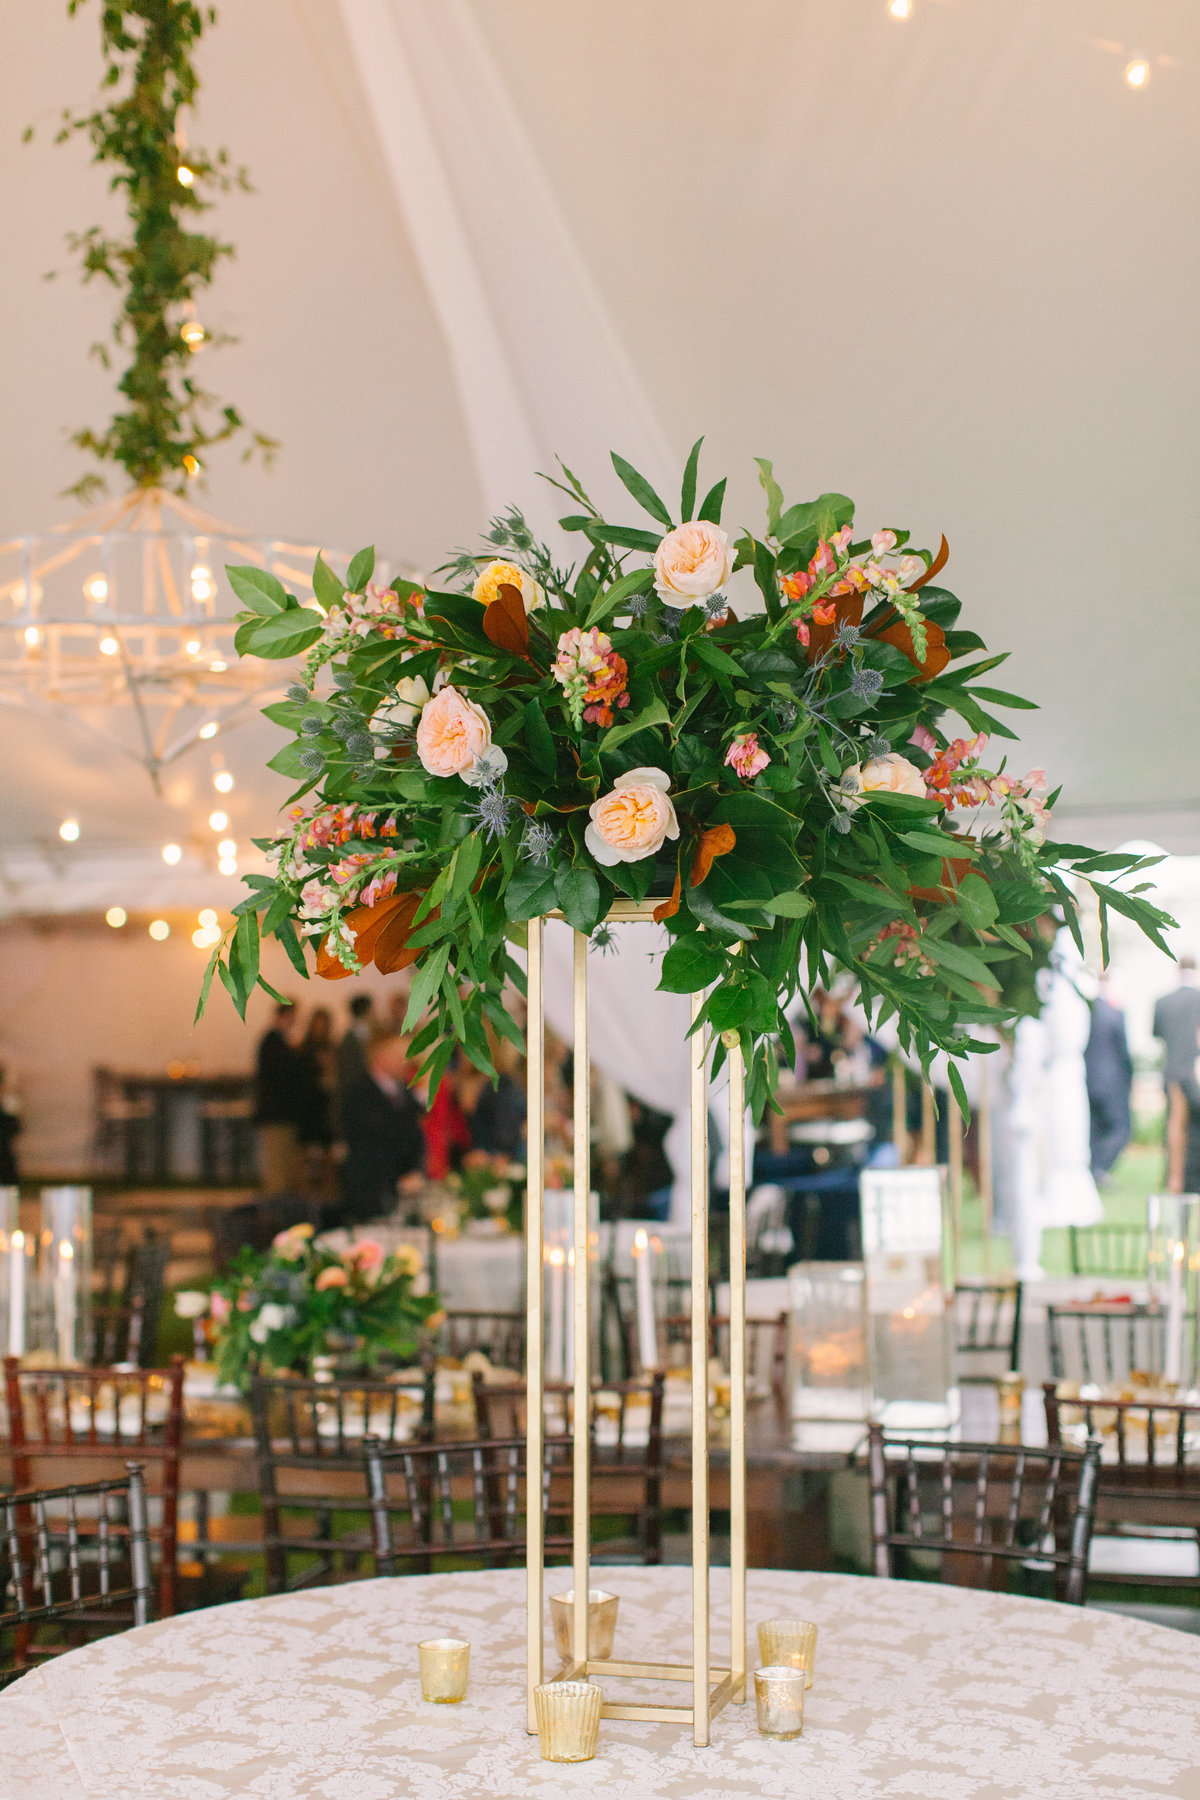 Tall Floral Arrangement on Gold Stand with Greenery  Blush Juliette Garden Roses and Magnolia Leaves